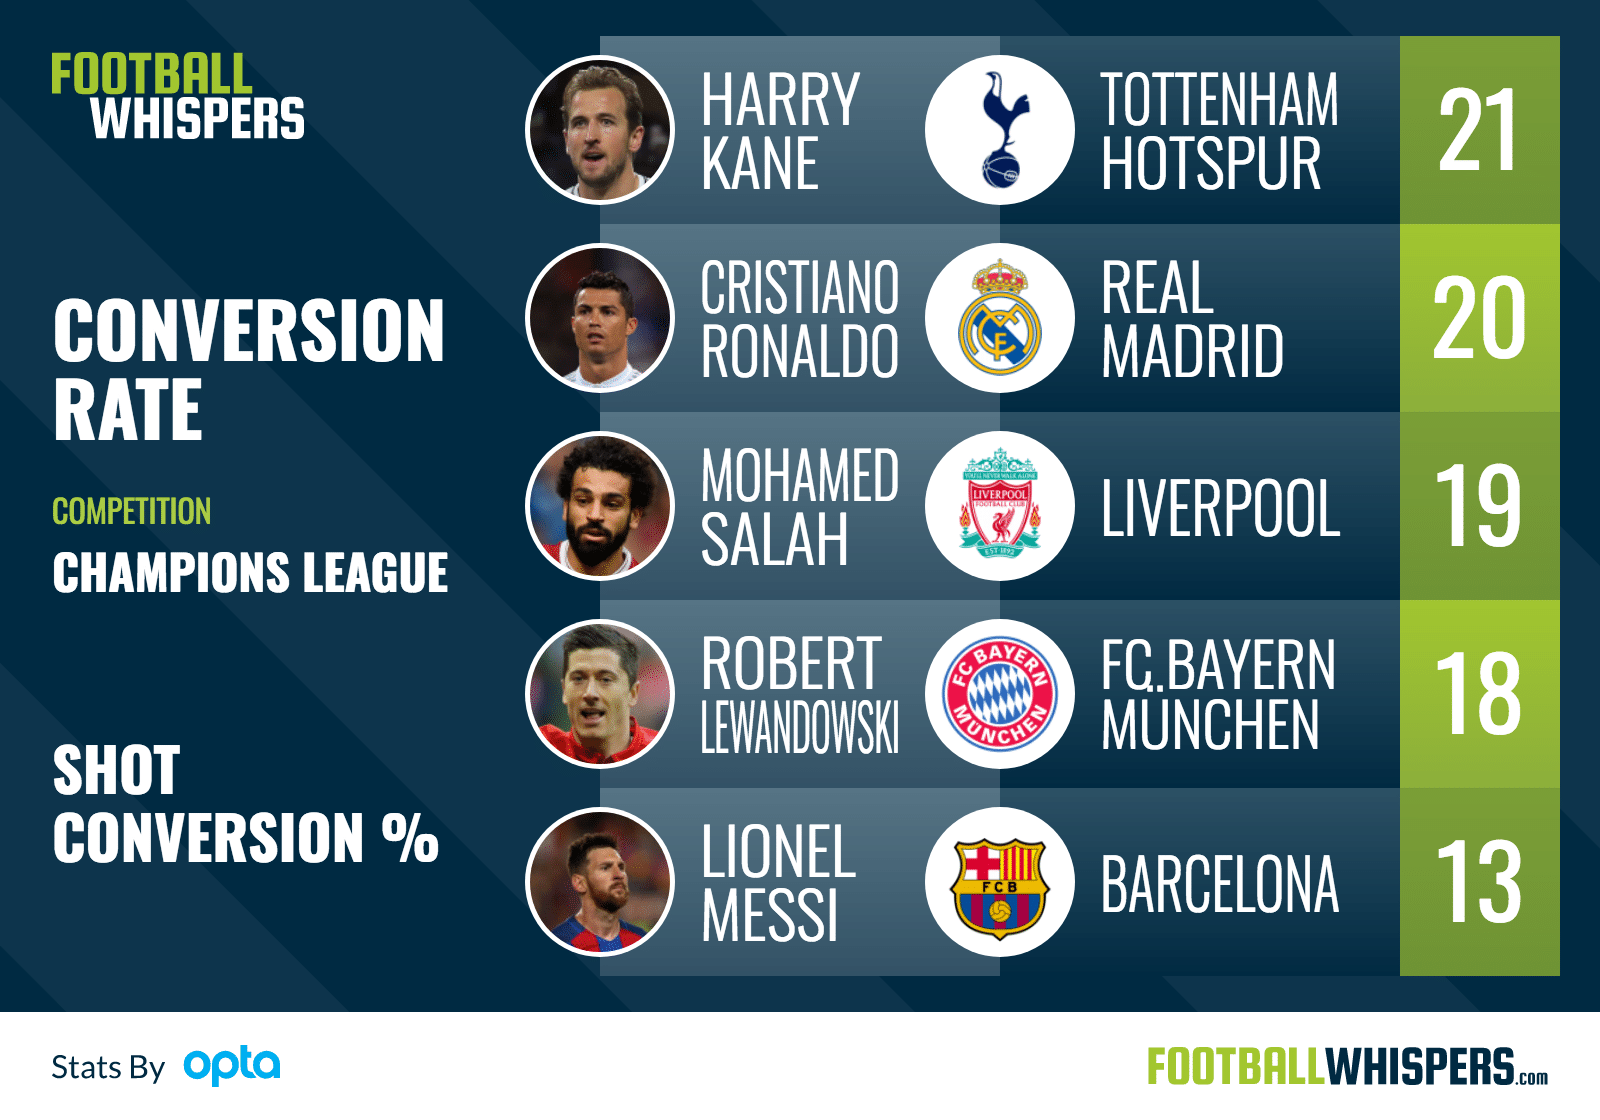 Revealed: The Champions League's Most Clinical Players